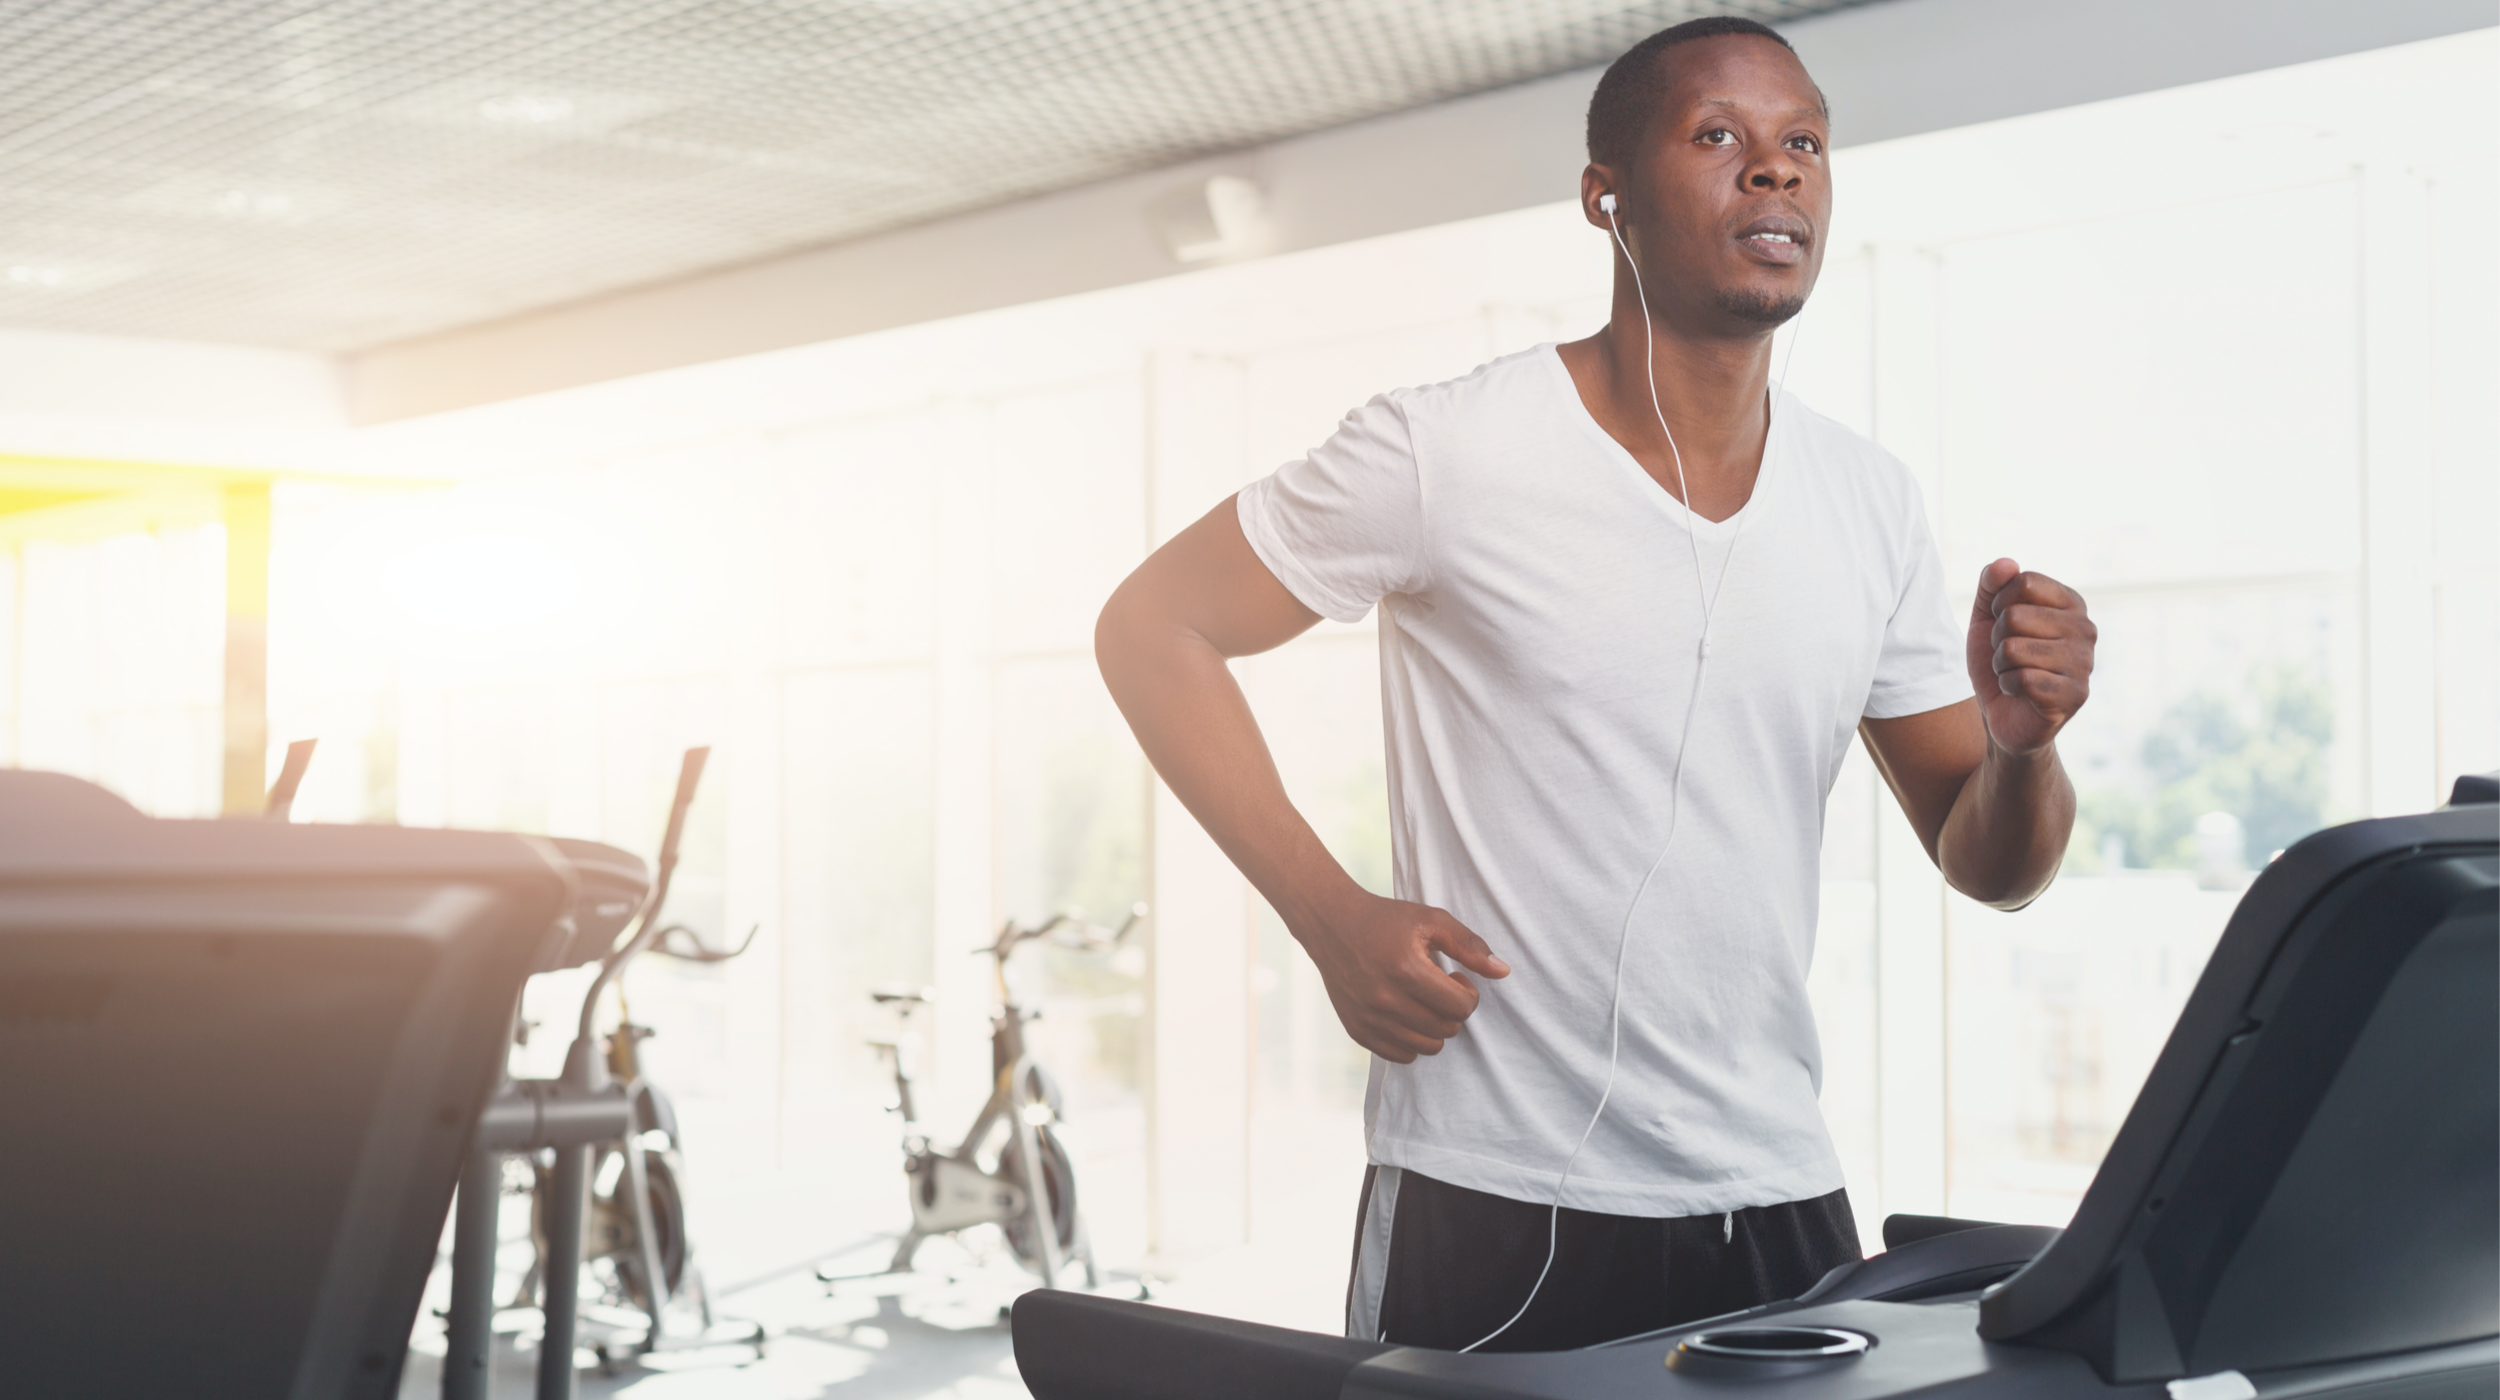 Why Skinny Guys (Hardgainers) Should Not Be Doing Cardio